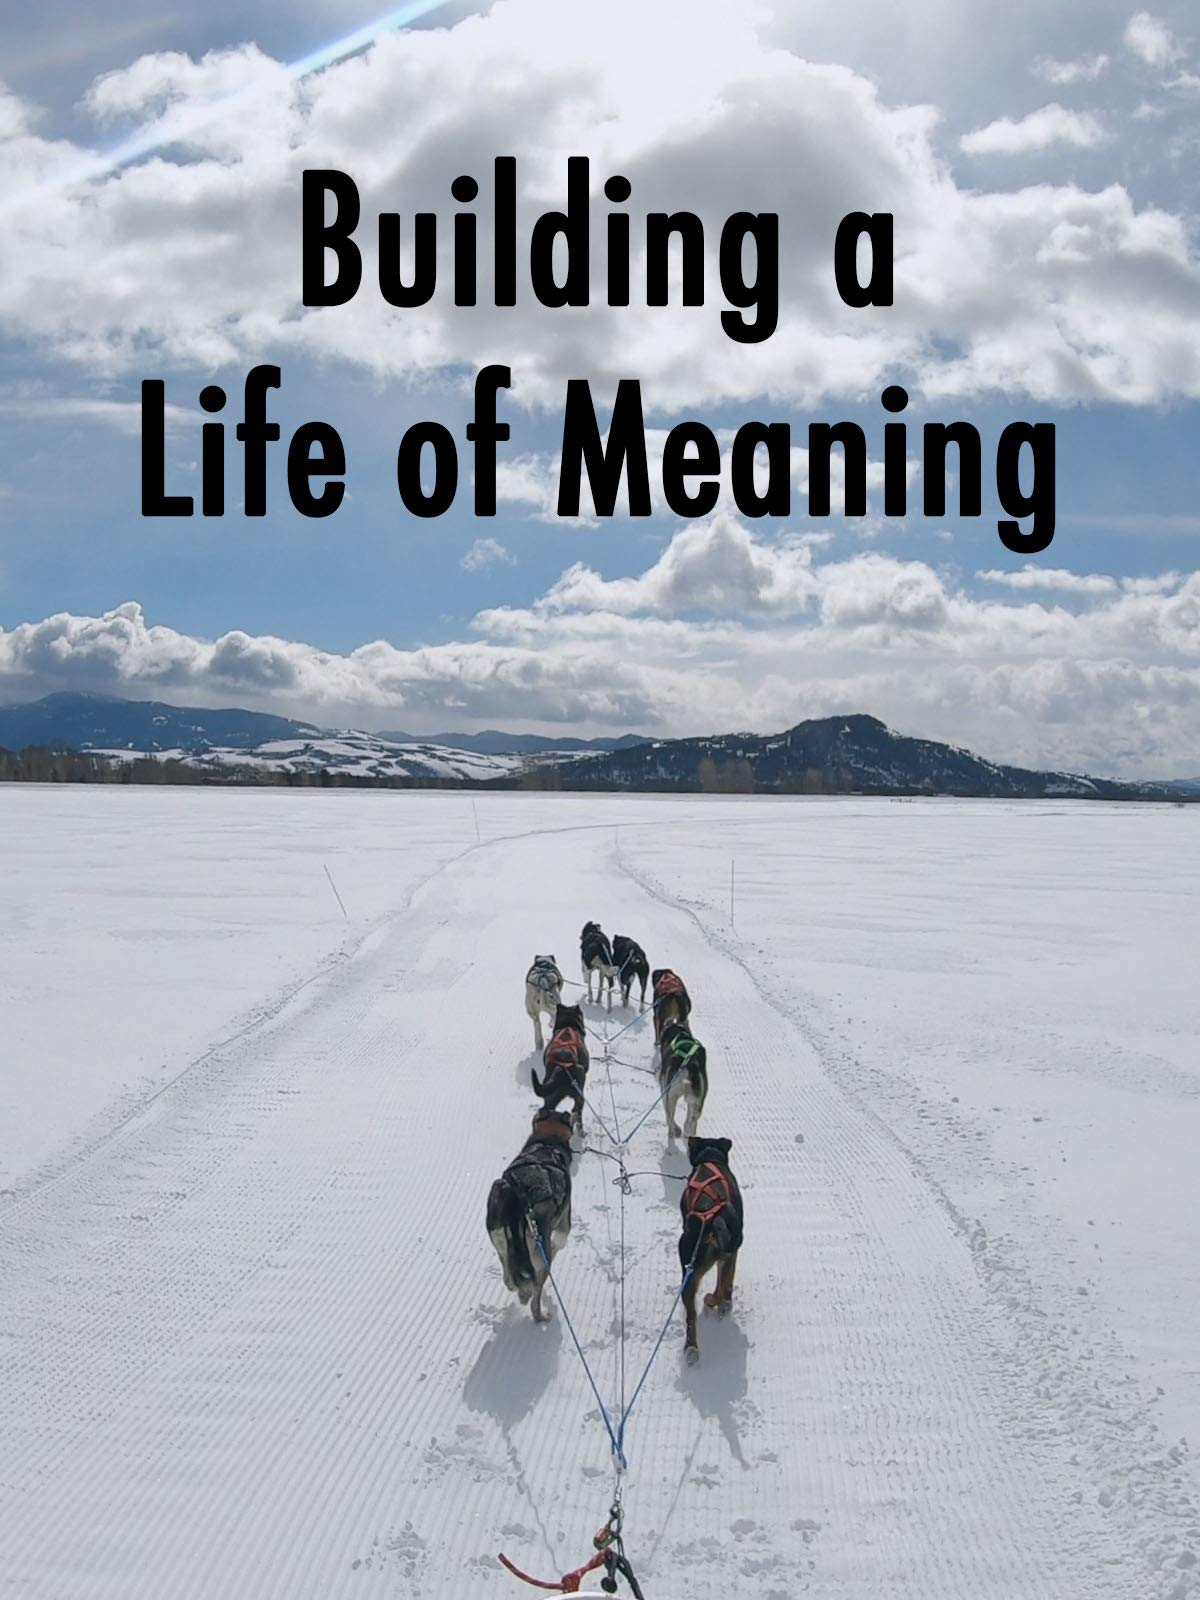 Building a Life of Meaning: A Sled dog story